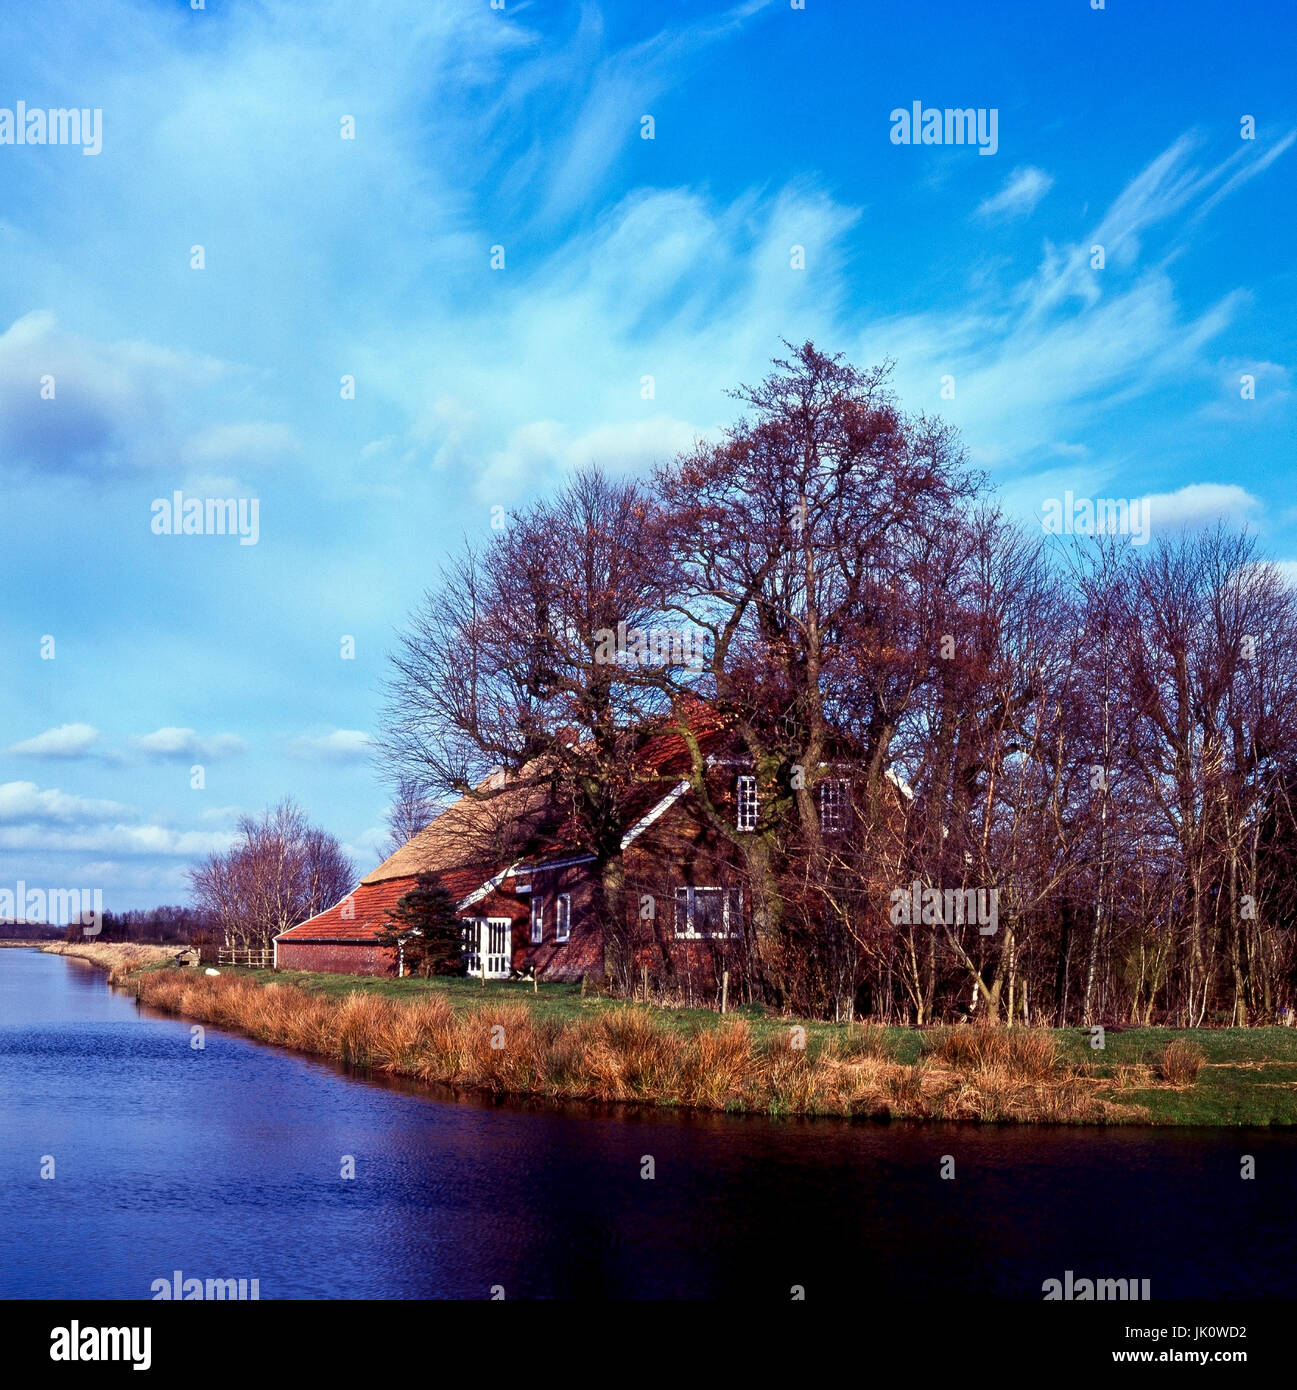 gulfhof in the water in the FLUMM depression. farmhouse in eastern frisia., gulfhof am wasser in der FLUMM-NIEDERUNG. - Stock Image